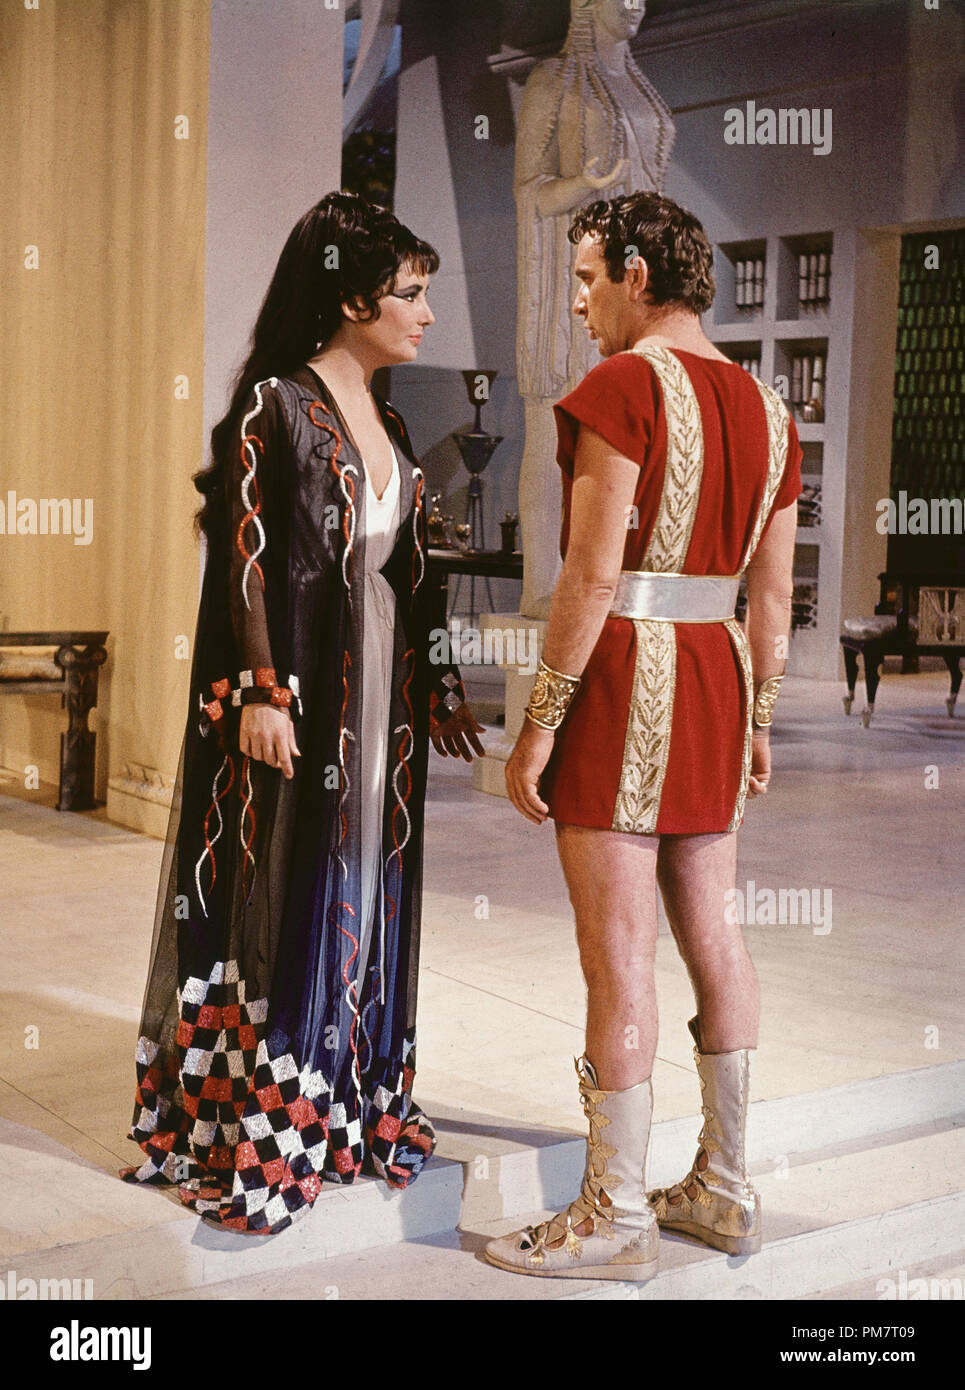 Elizabeth Taylor And Richard Burton Cleopatra 1963 20th Century Fox File Reference 31386 496 Stock Photo Alamy